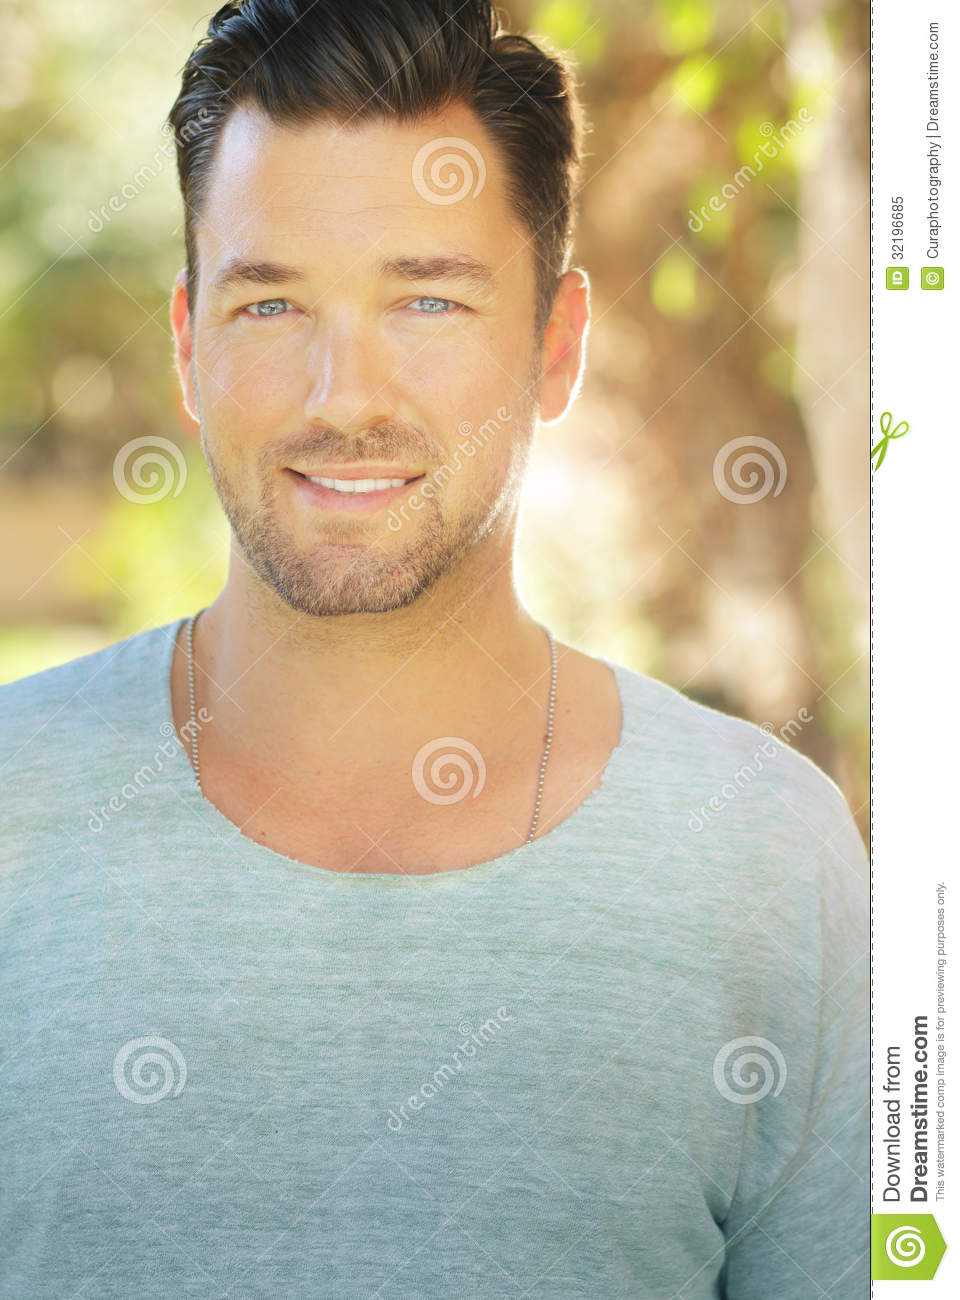 Happy Young Man Royalty Free Stock Photo - Image: 32196685  Good Looking Young Man